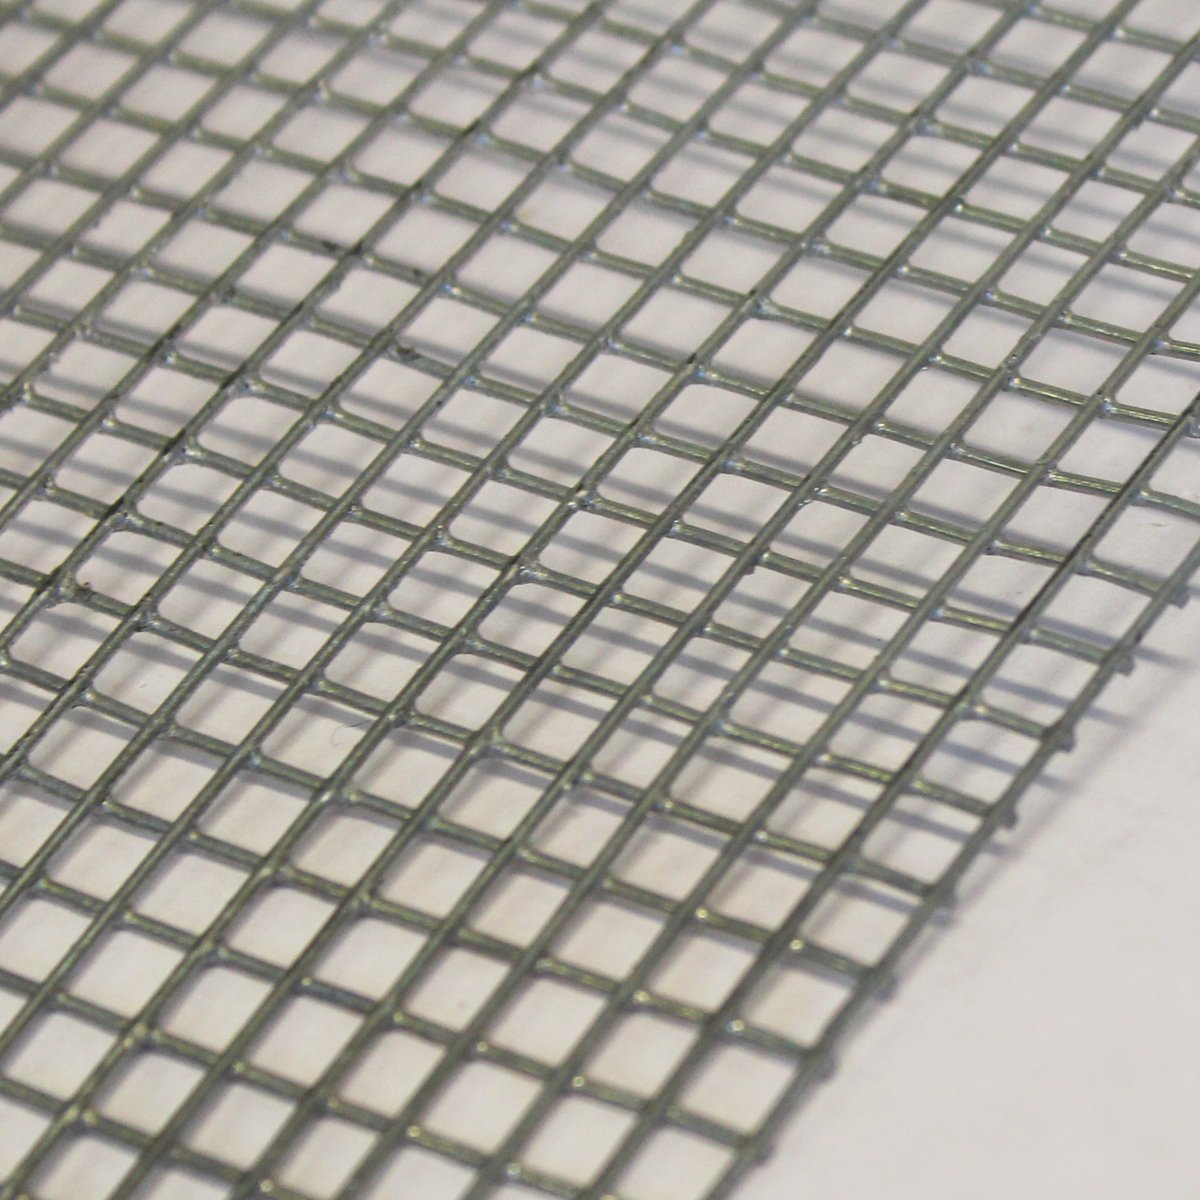 Welded Mesh Panels Galvanized Steel Wire 6 Mm x 6 Mm holes 4 Pack of ...